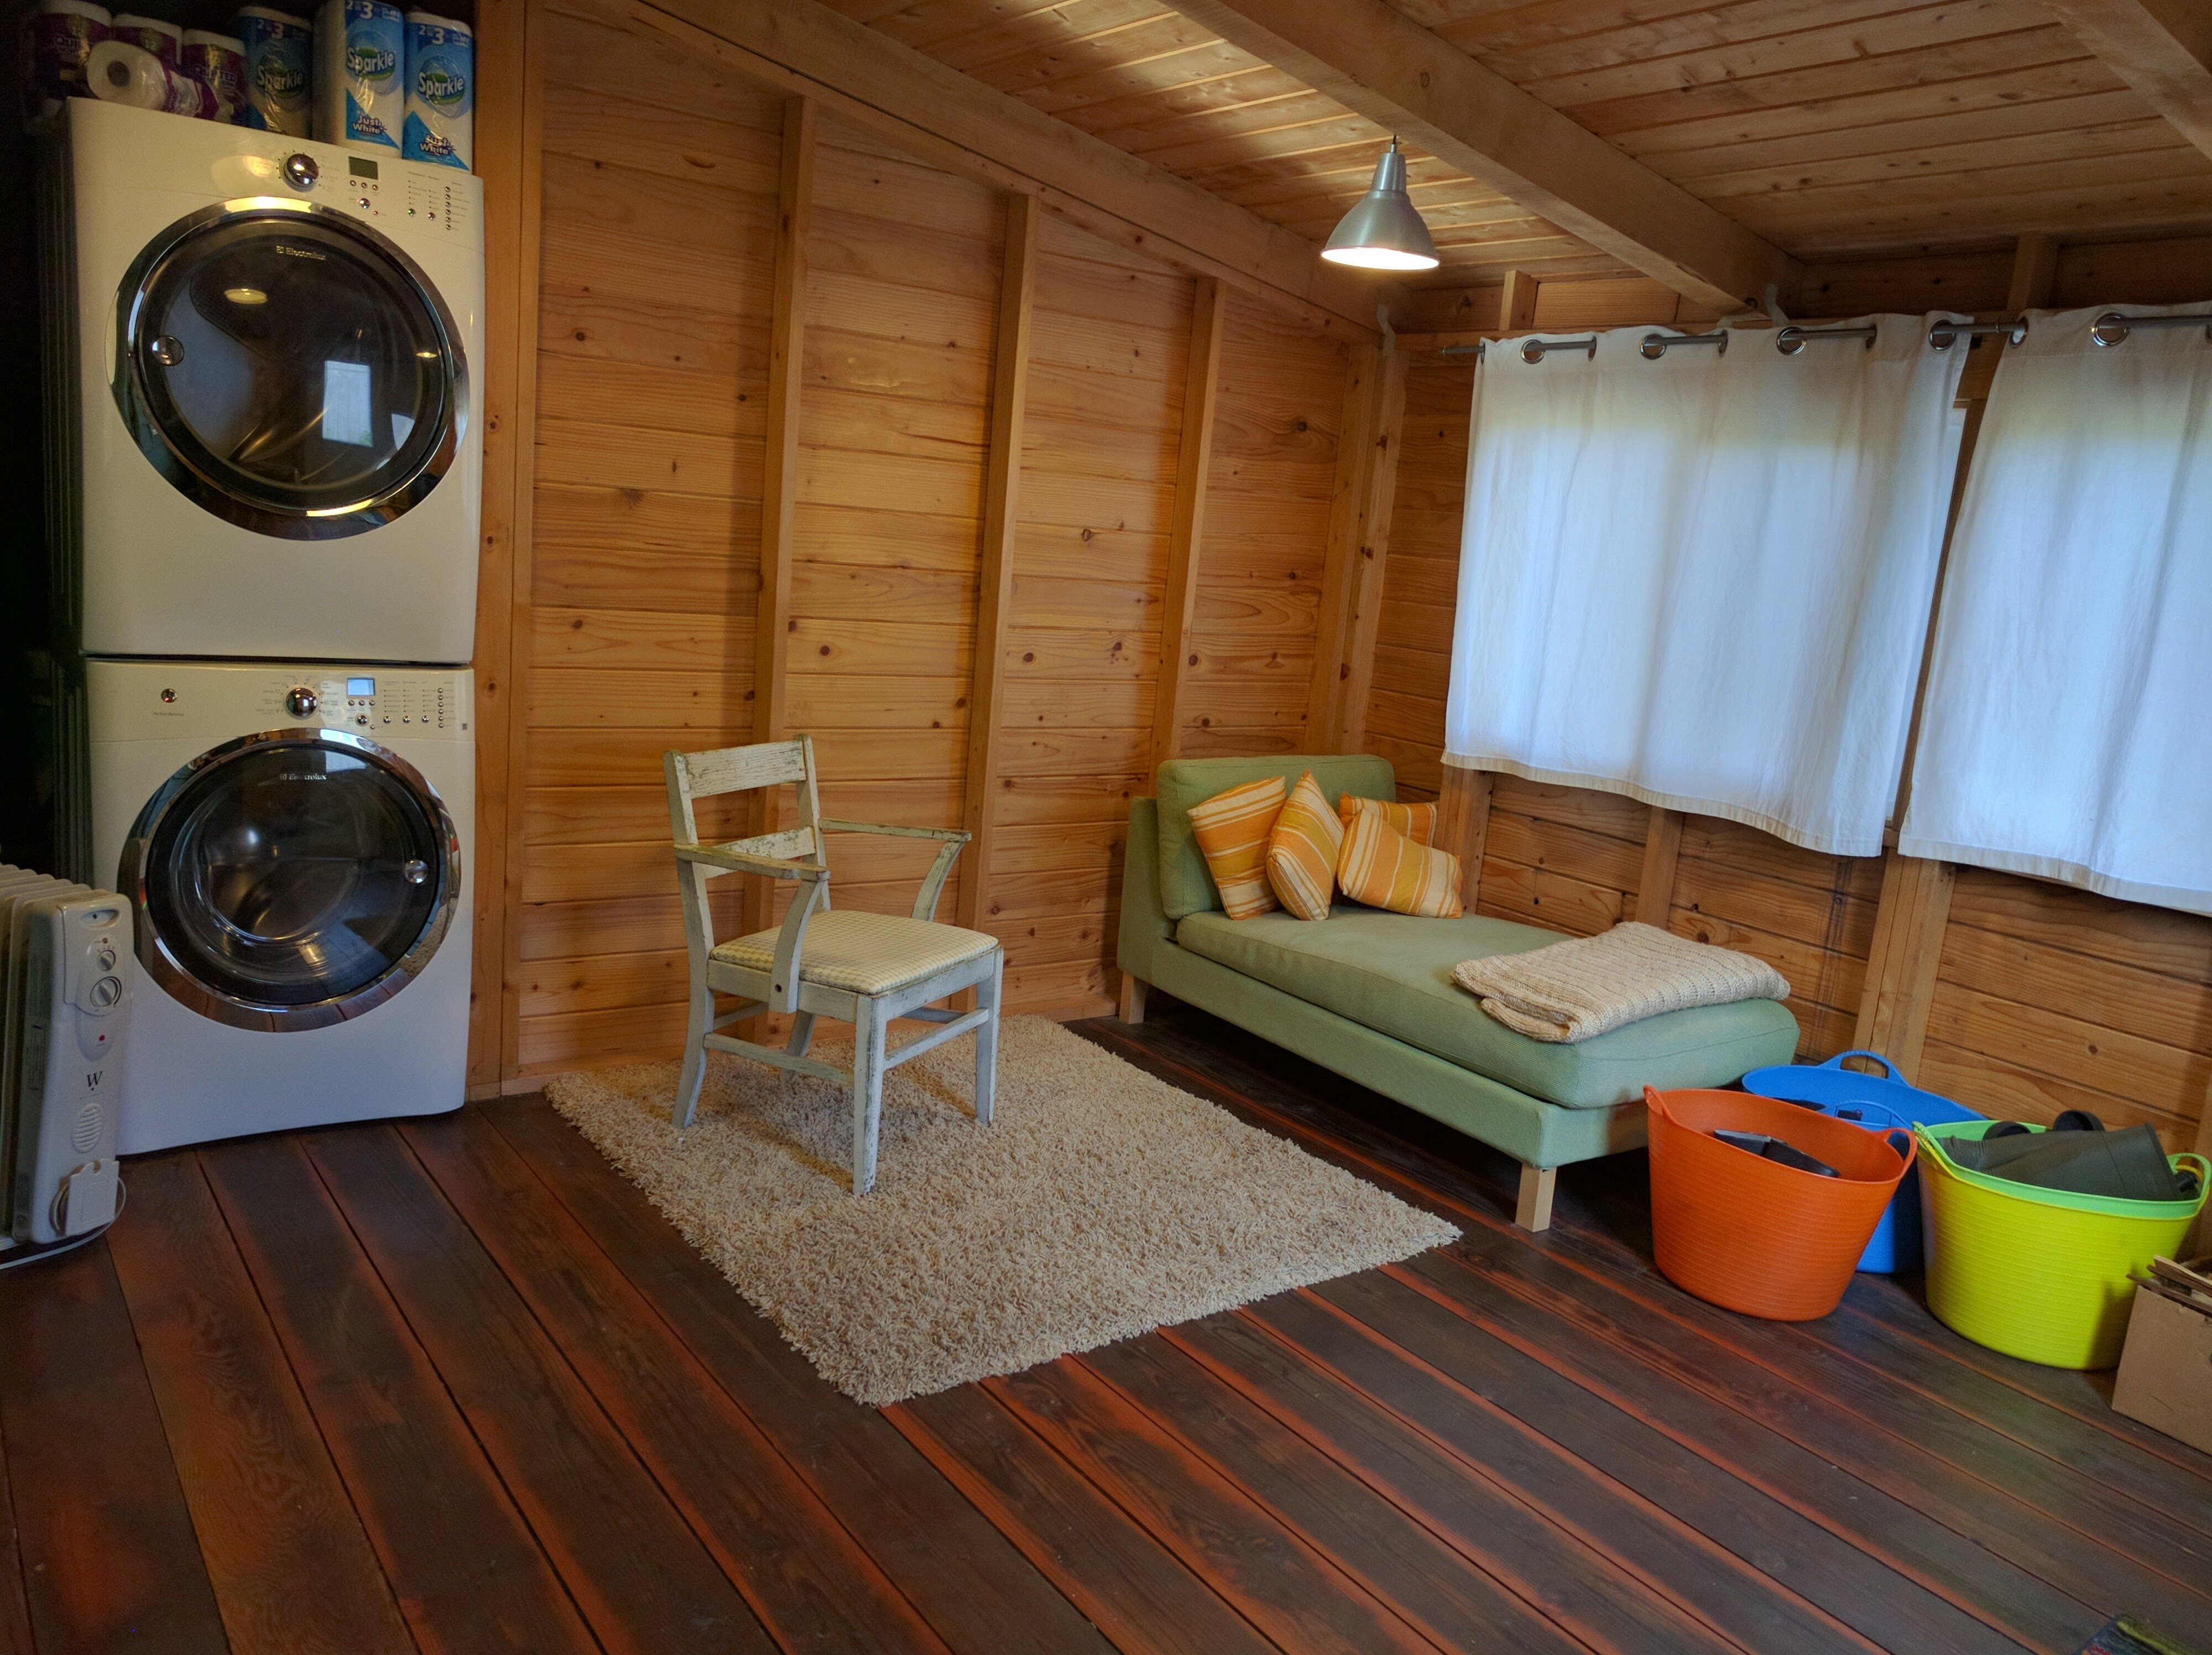 Cozy room with laundry facilities